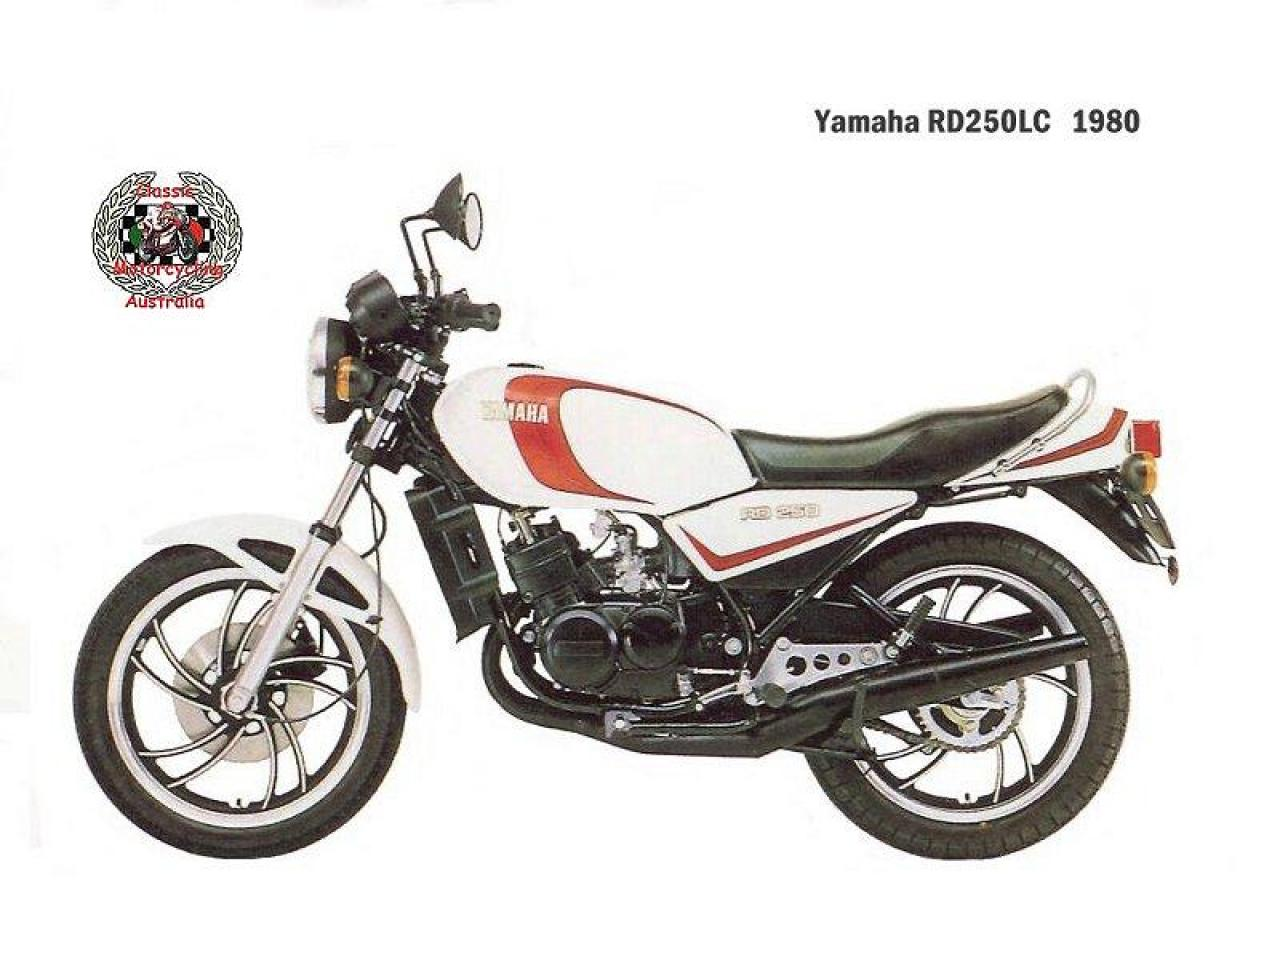 1983 Yamaha RD 250 LC (reduced effect) #4